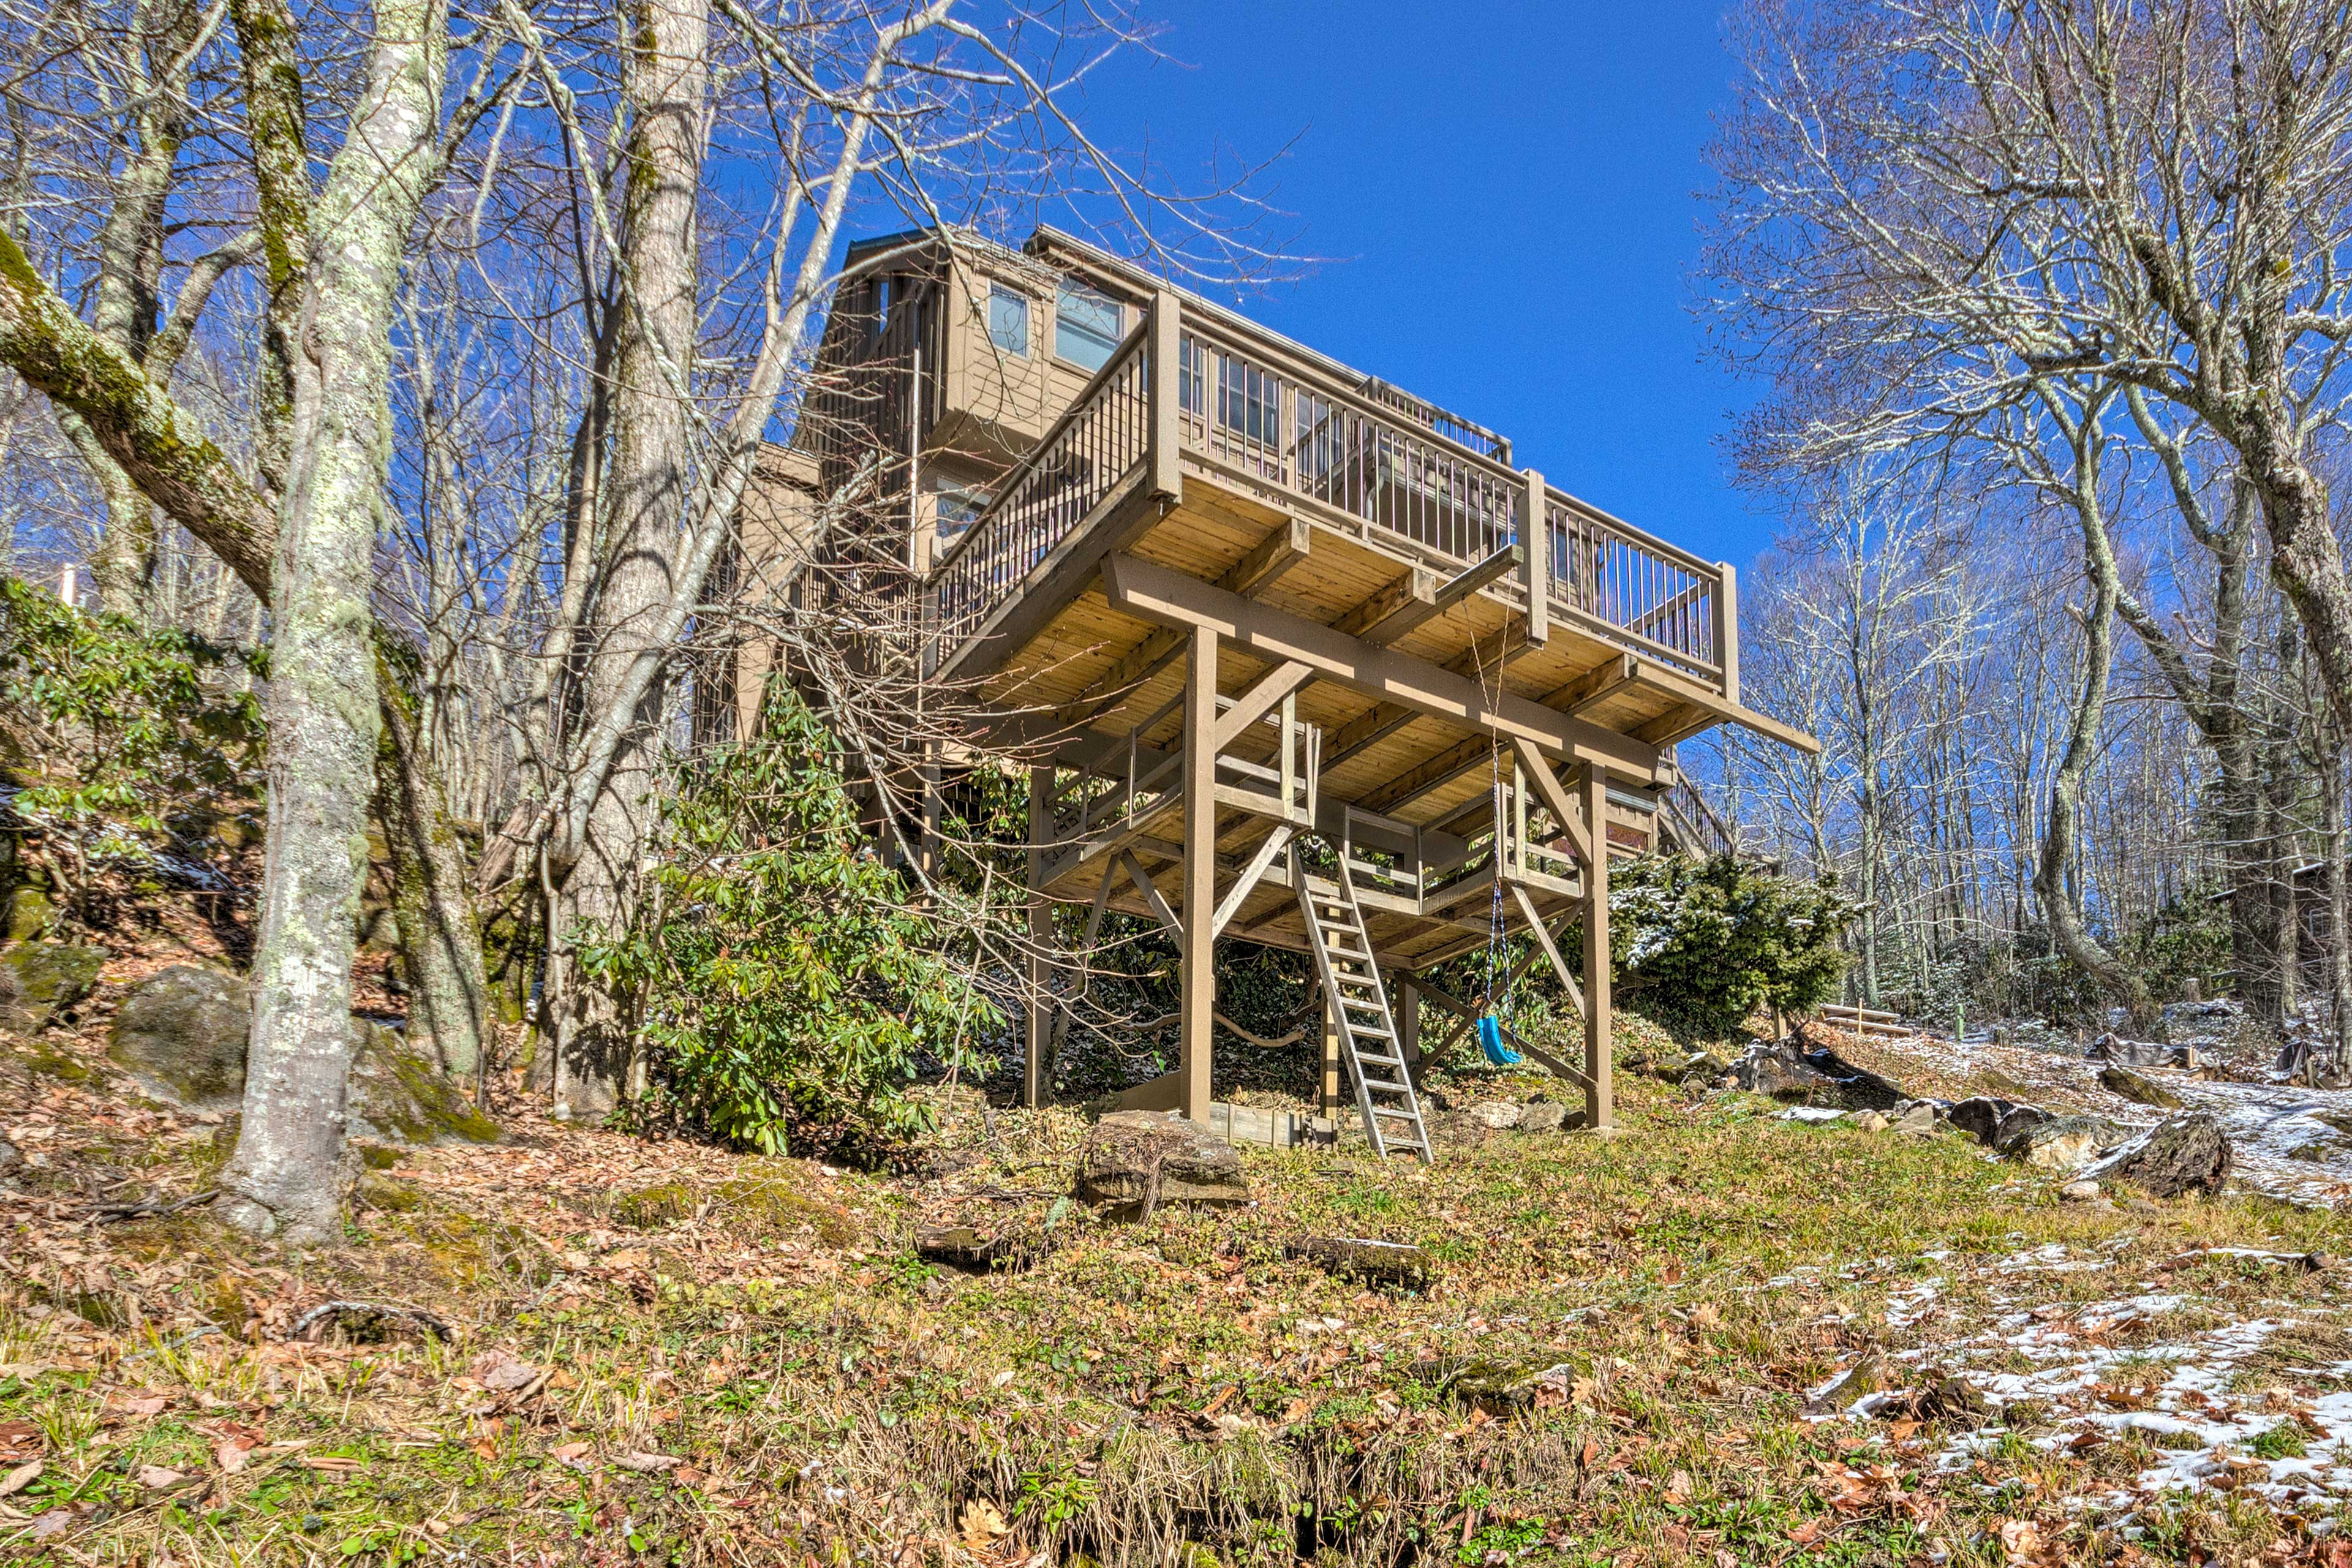 You'll love this fun treehouse-like hilltop retreat!